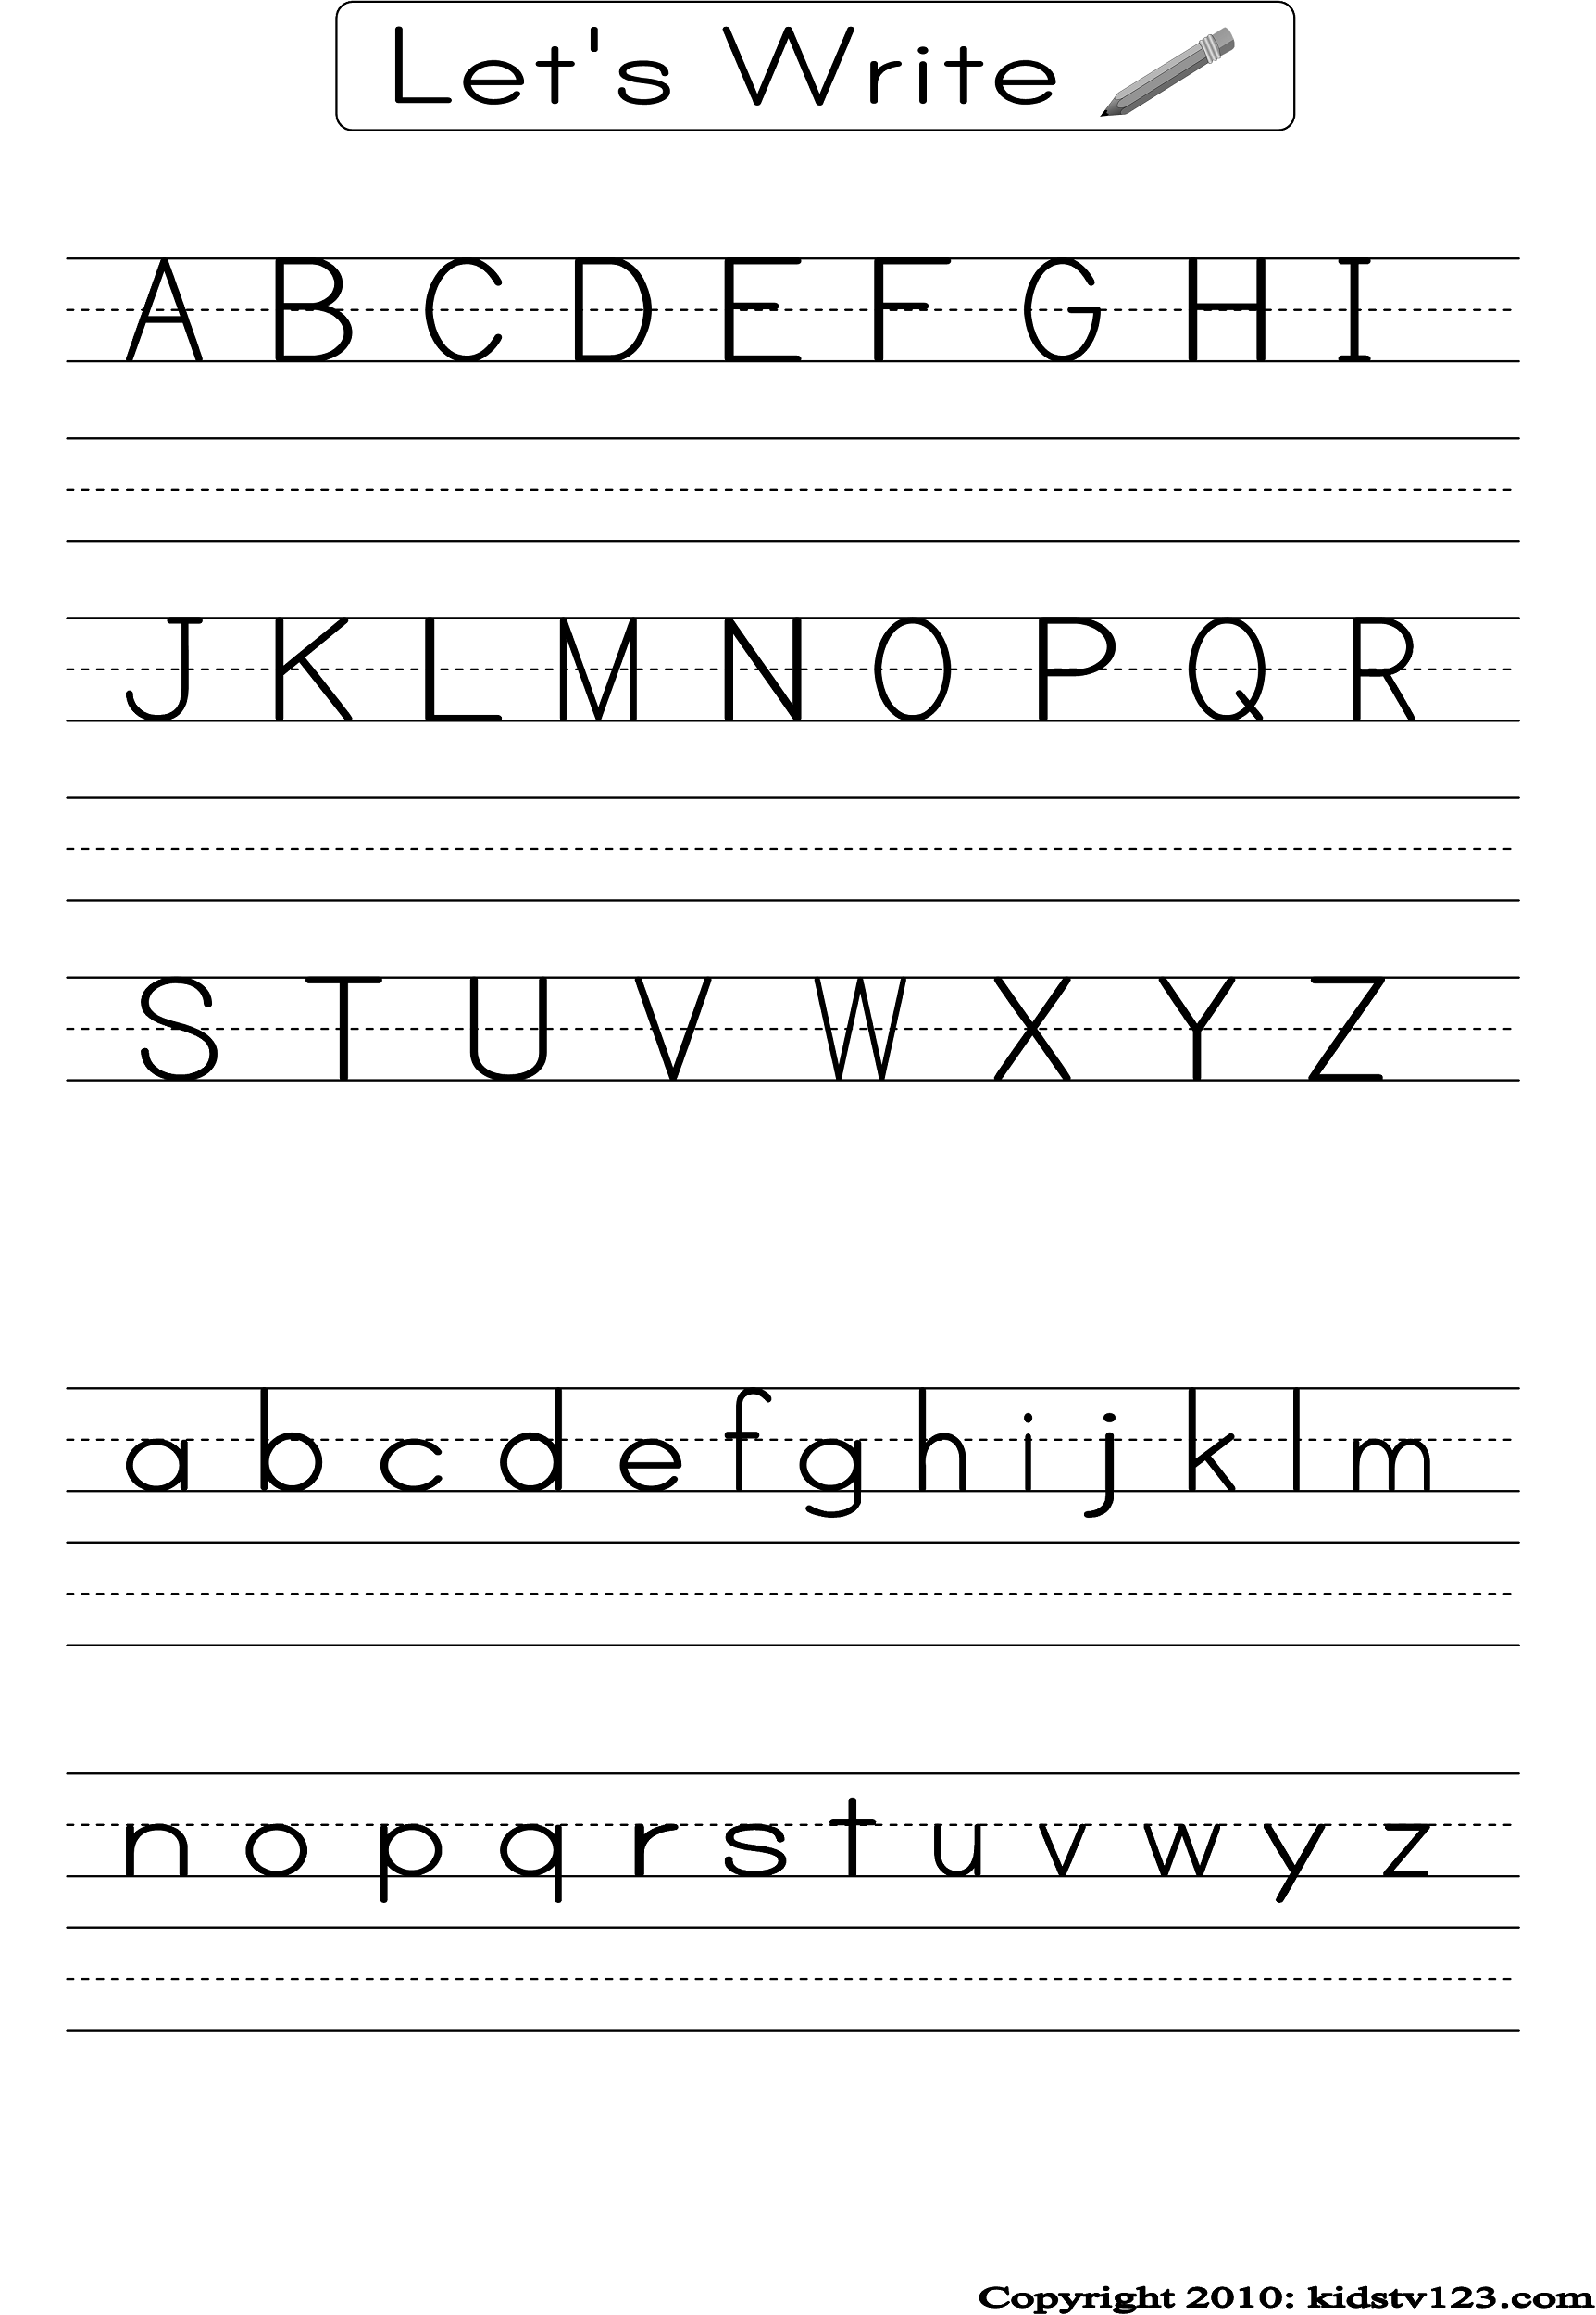 Alphabet Writing Worksheets : Alphabet practice worksheets to print activity shelter